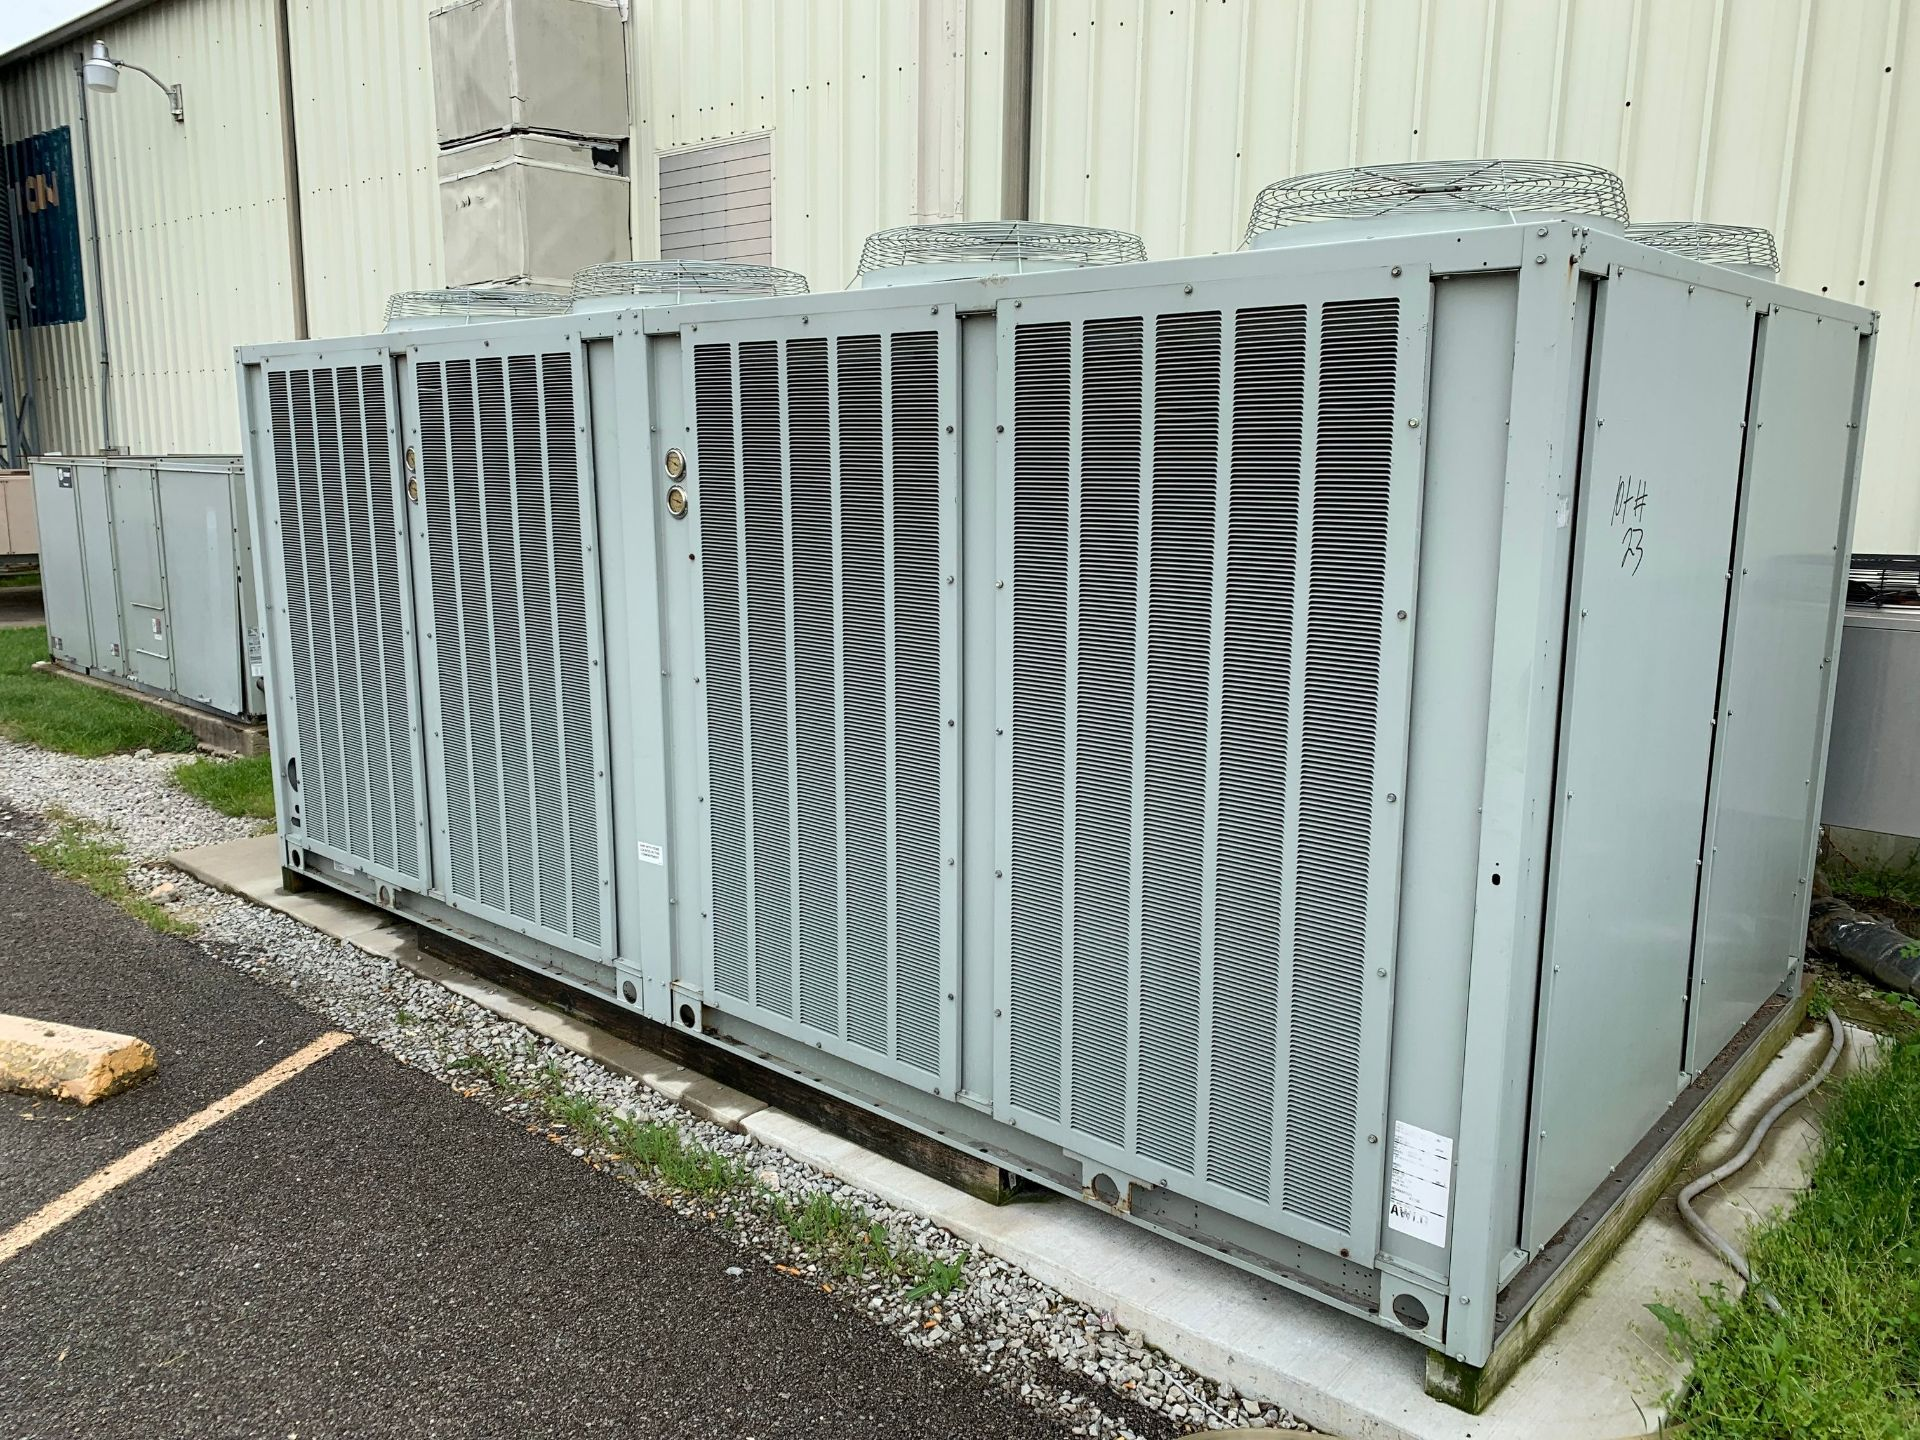 Lot 23 - 80 TON TRANE MODEL RAUJC804PB032BDF0035 AIR CONDENSED CENTRAL WATER CHILLER; S/N C13A00509, REMOTE